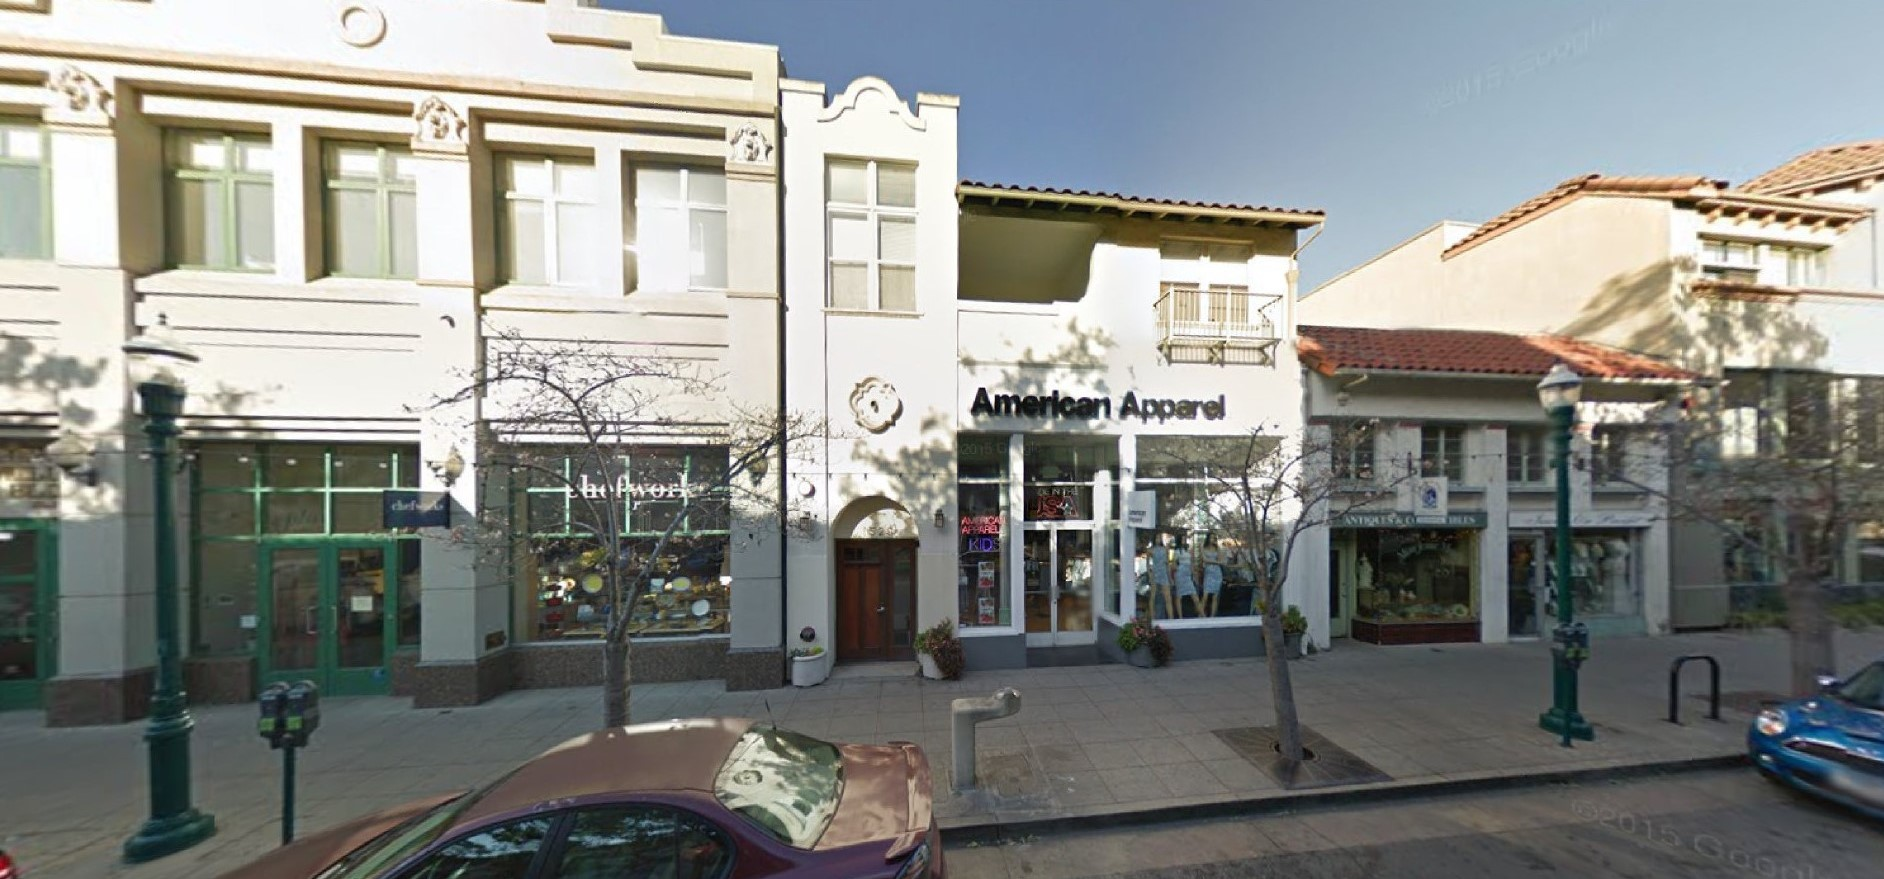 American Apparel 1531 Pacific Avenue Santa Cruz CA 1 https___www.google